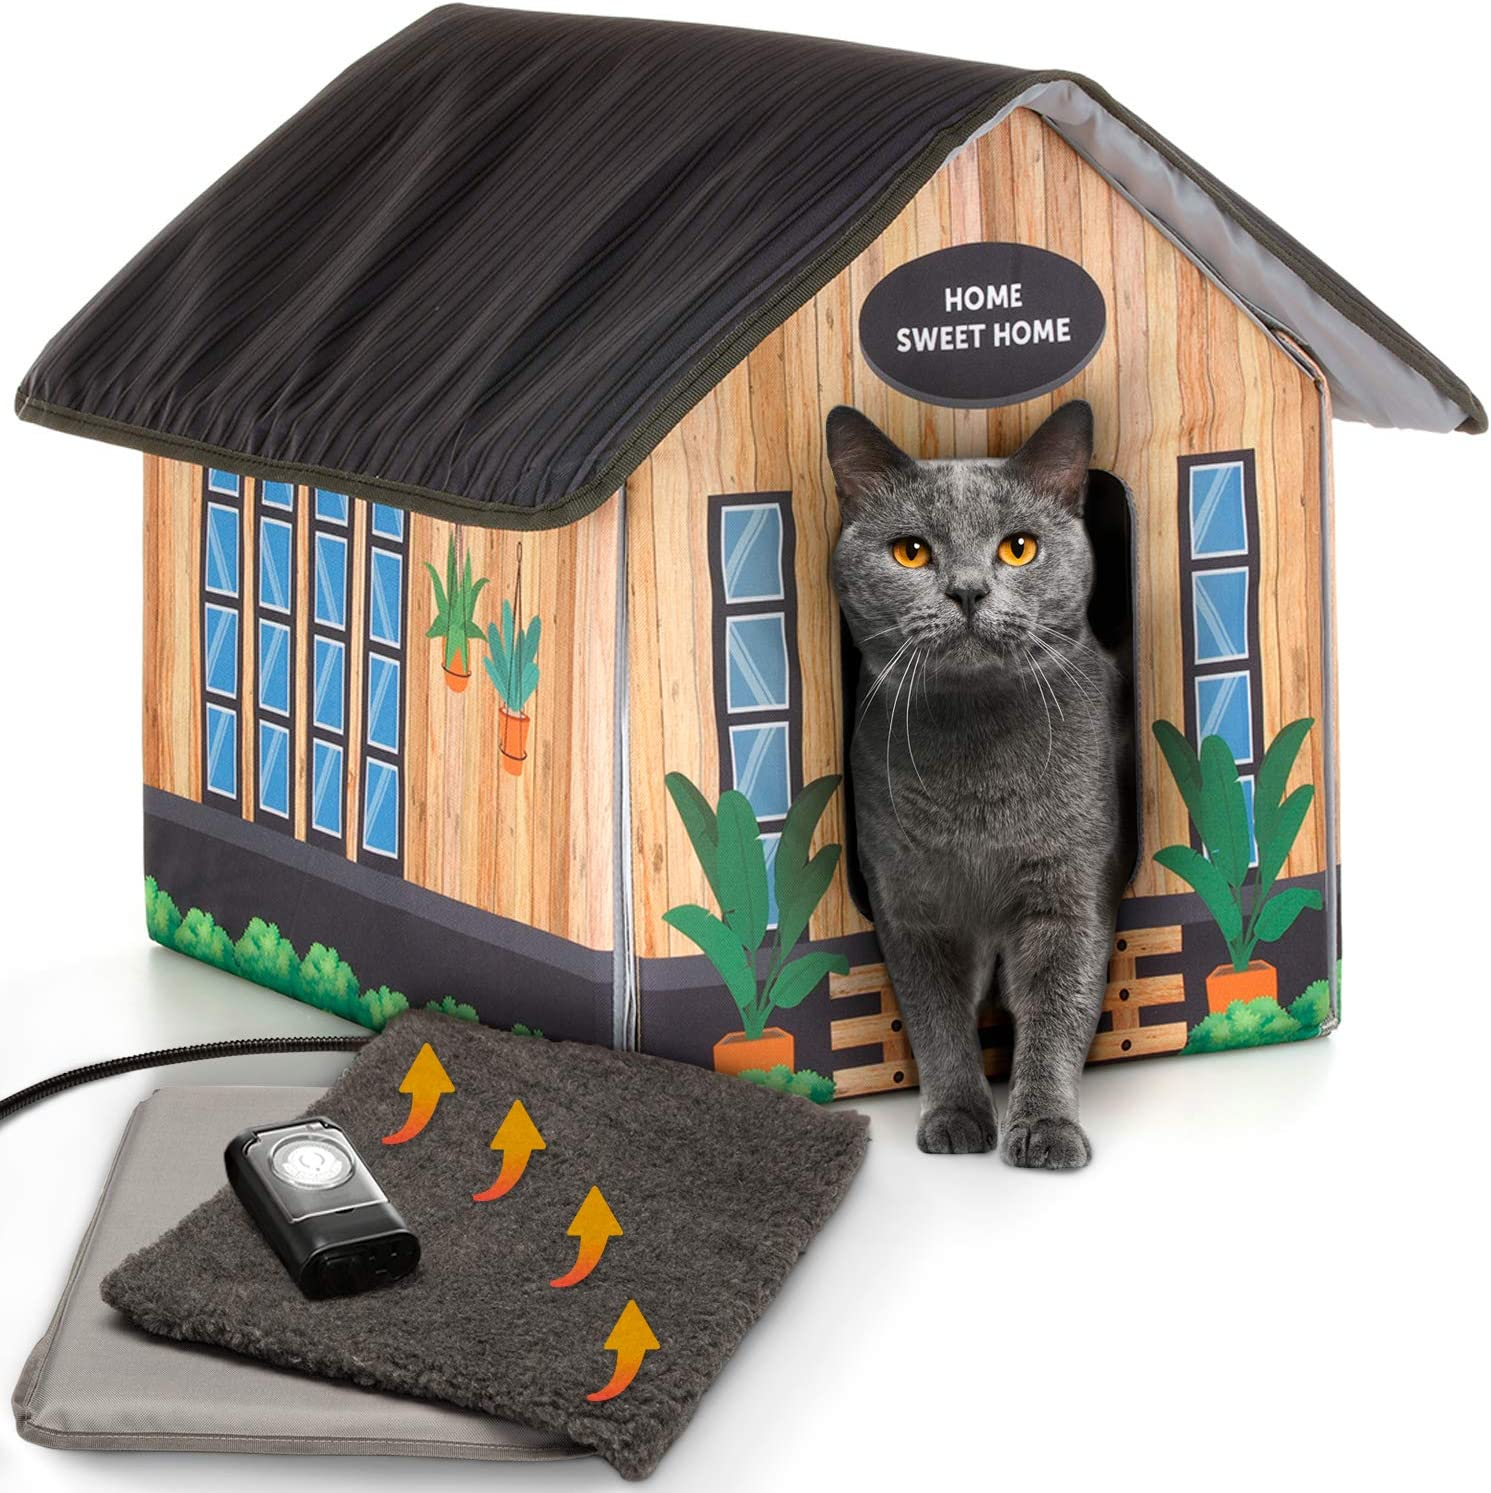 Petyella Heated Cat Houses For Outdoor Cats In Winter Heated Outdoor Cat House Weatherproof Outdoor Heated Cat House Easy To Assemble Pet Supplies